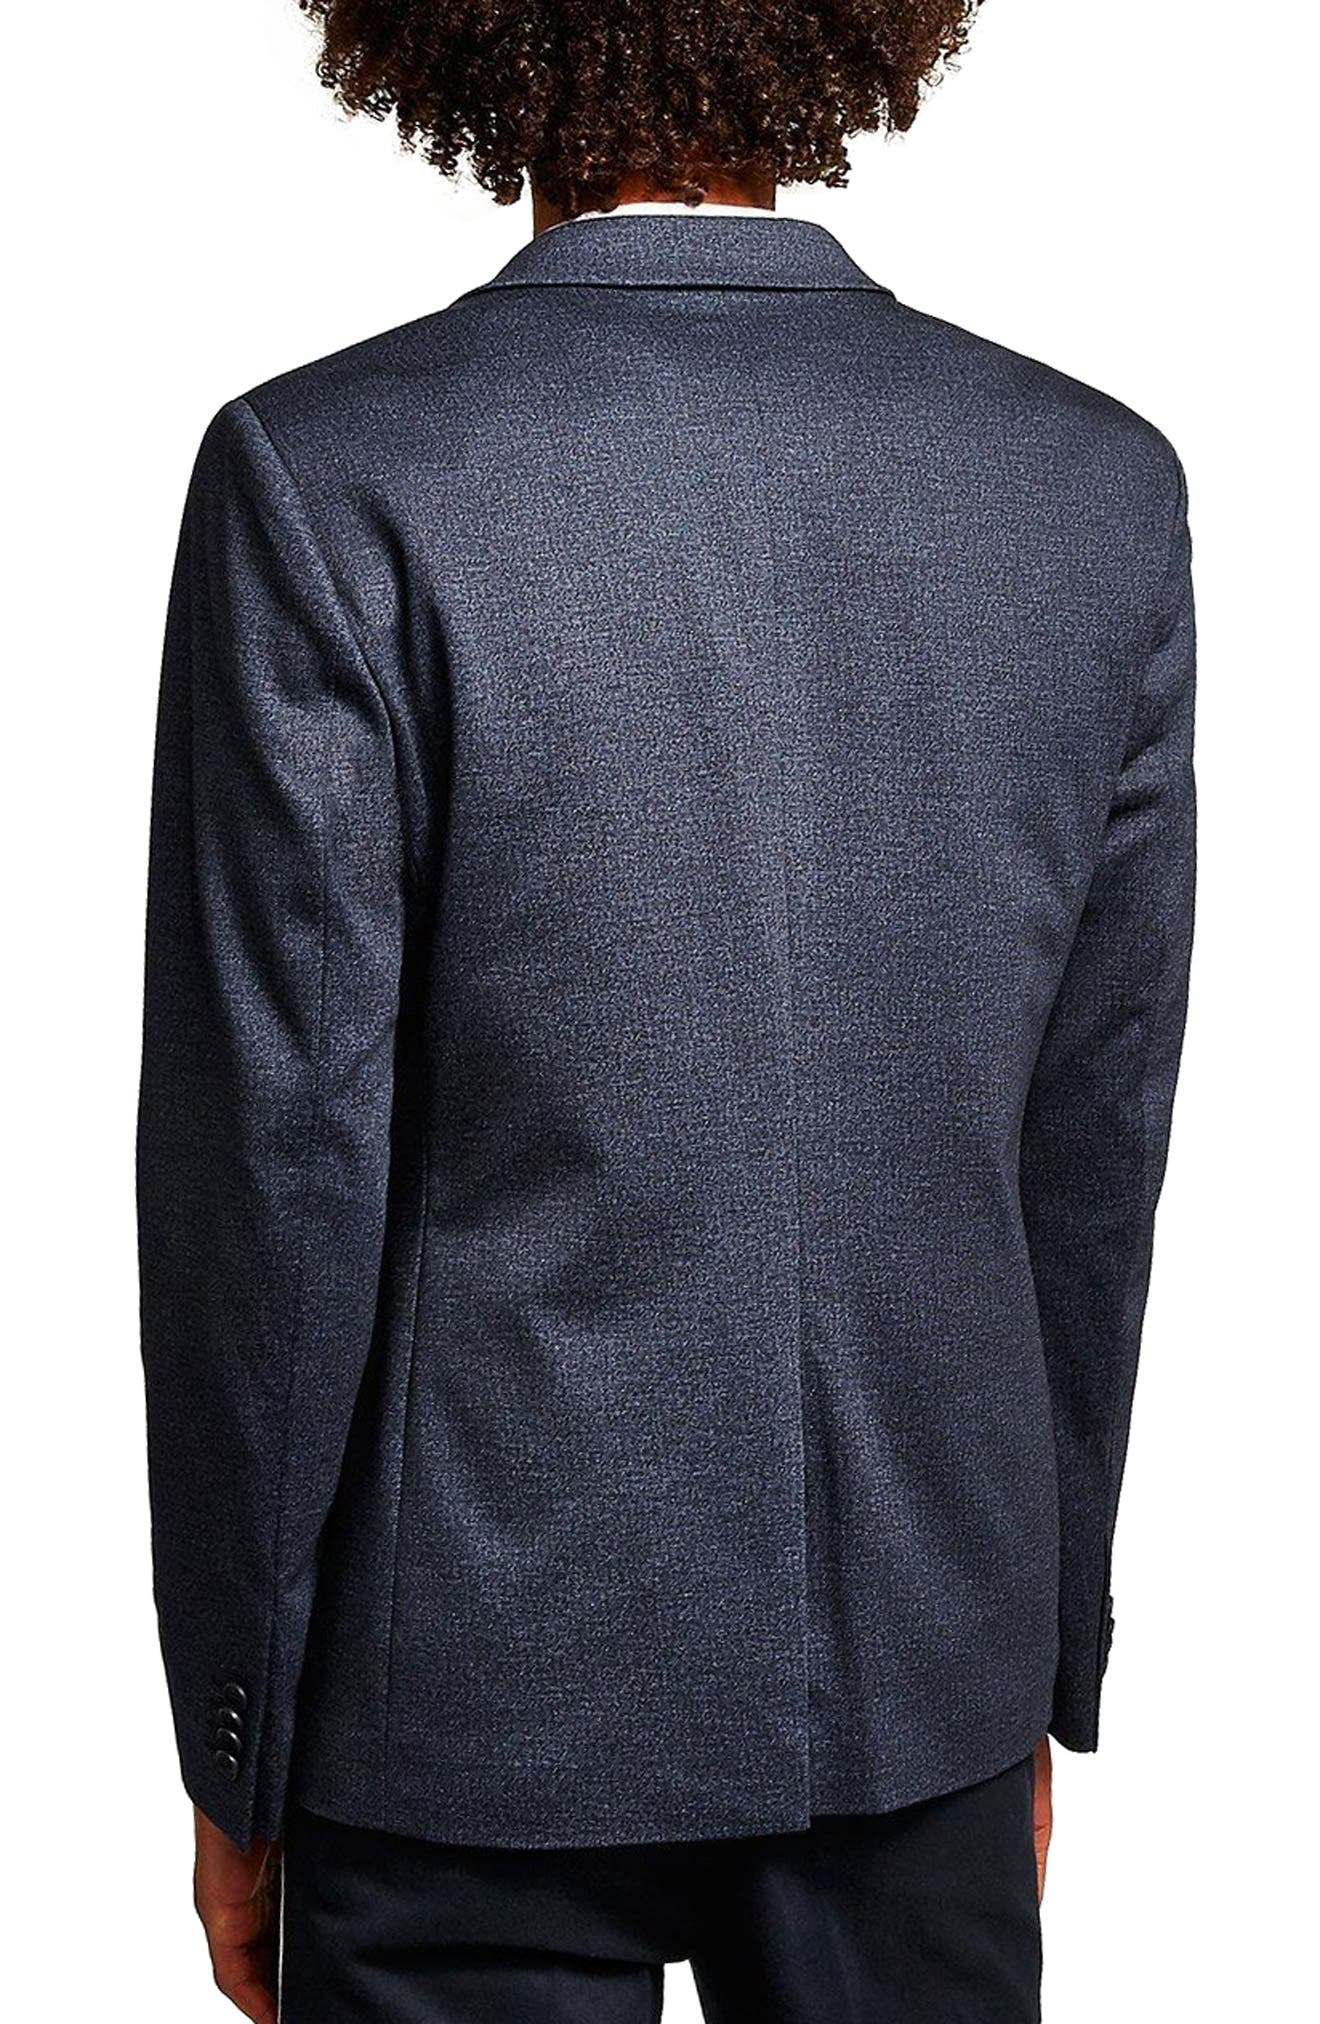 Classic Fit Sport Coat,                             Alternate thumbnail 2, color,                             DARK BLUE